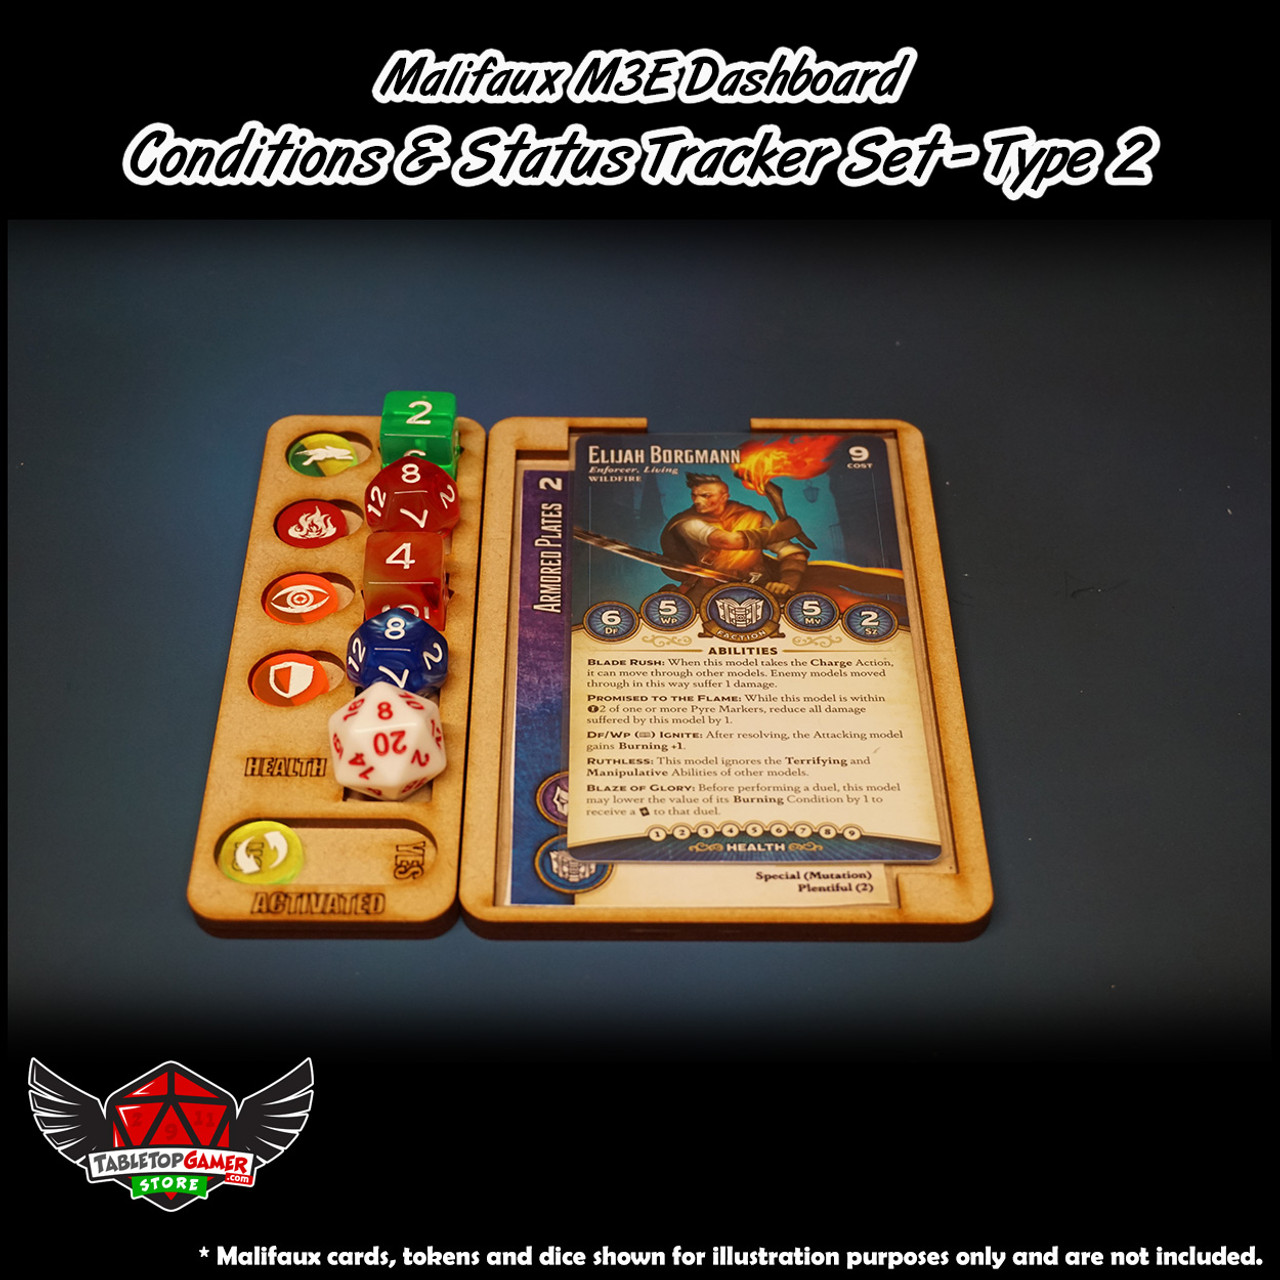 Malifaux M3E Dashboard - Conditions & Status Tracker Set -  Type 2